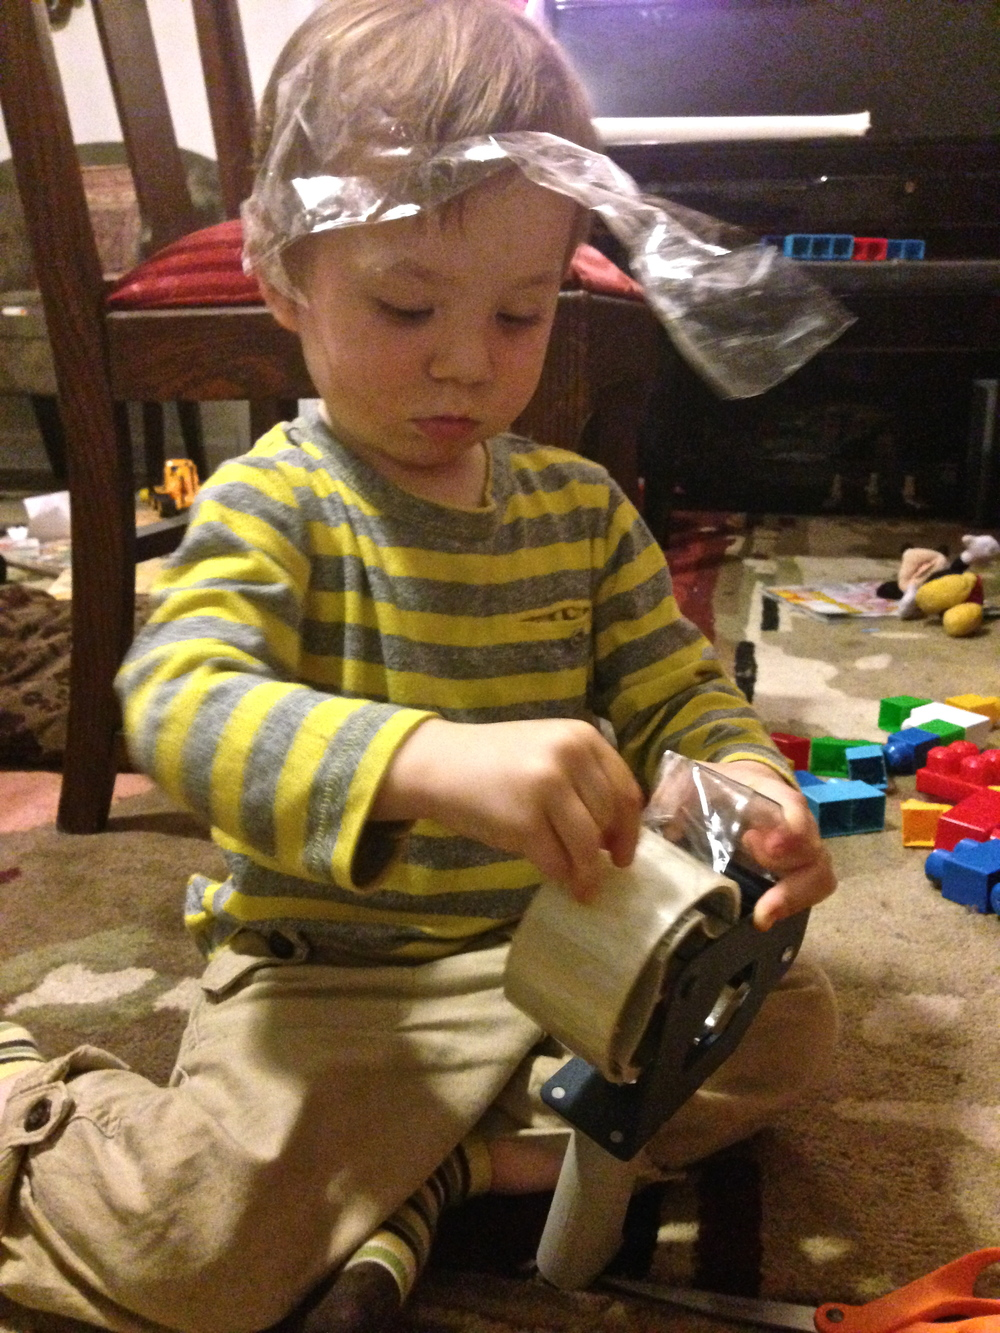 Finn playing with tape